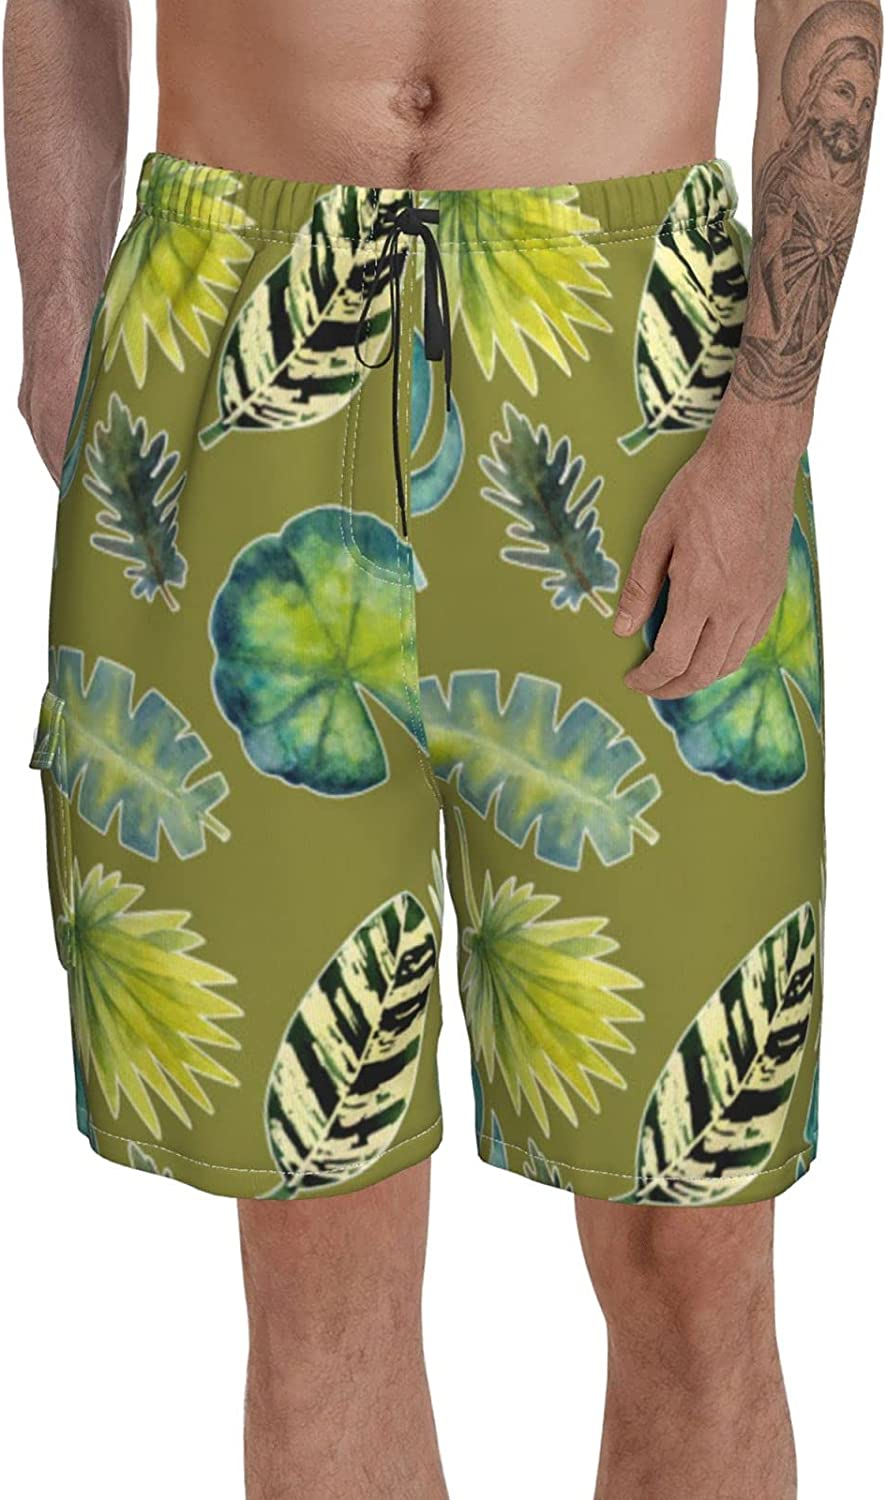 Classic Swimming Trunks Men Swim Clearance 2021new shipping free shipping SALE Limited time Elastic Tropical Leaves Shorts